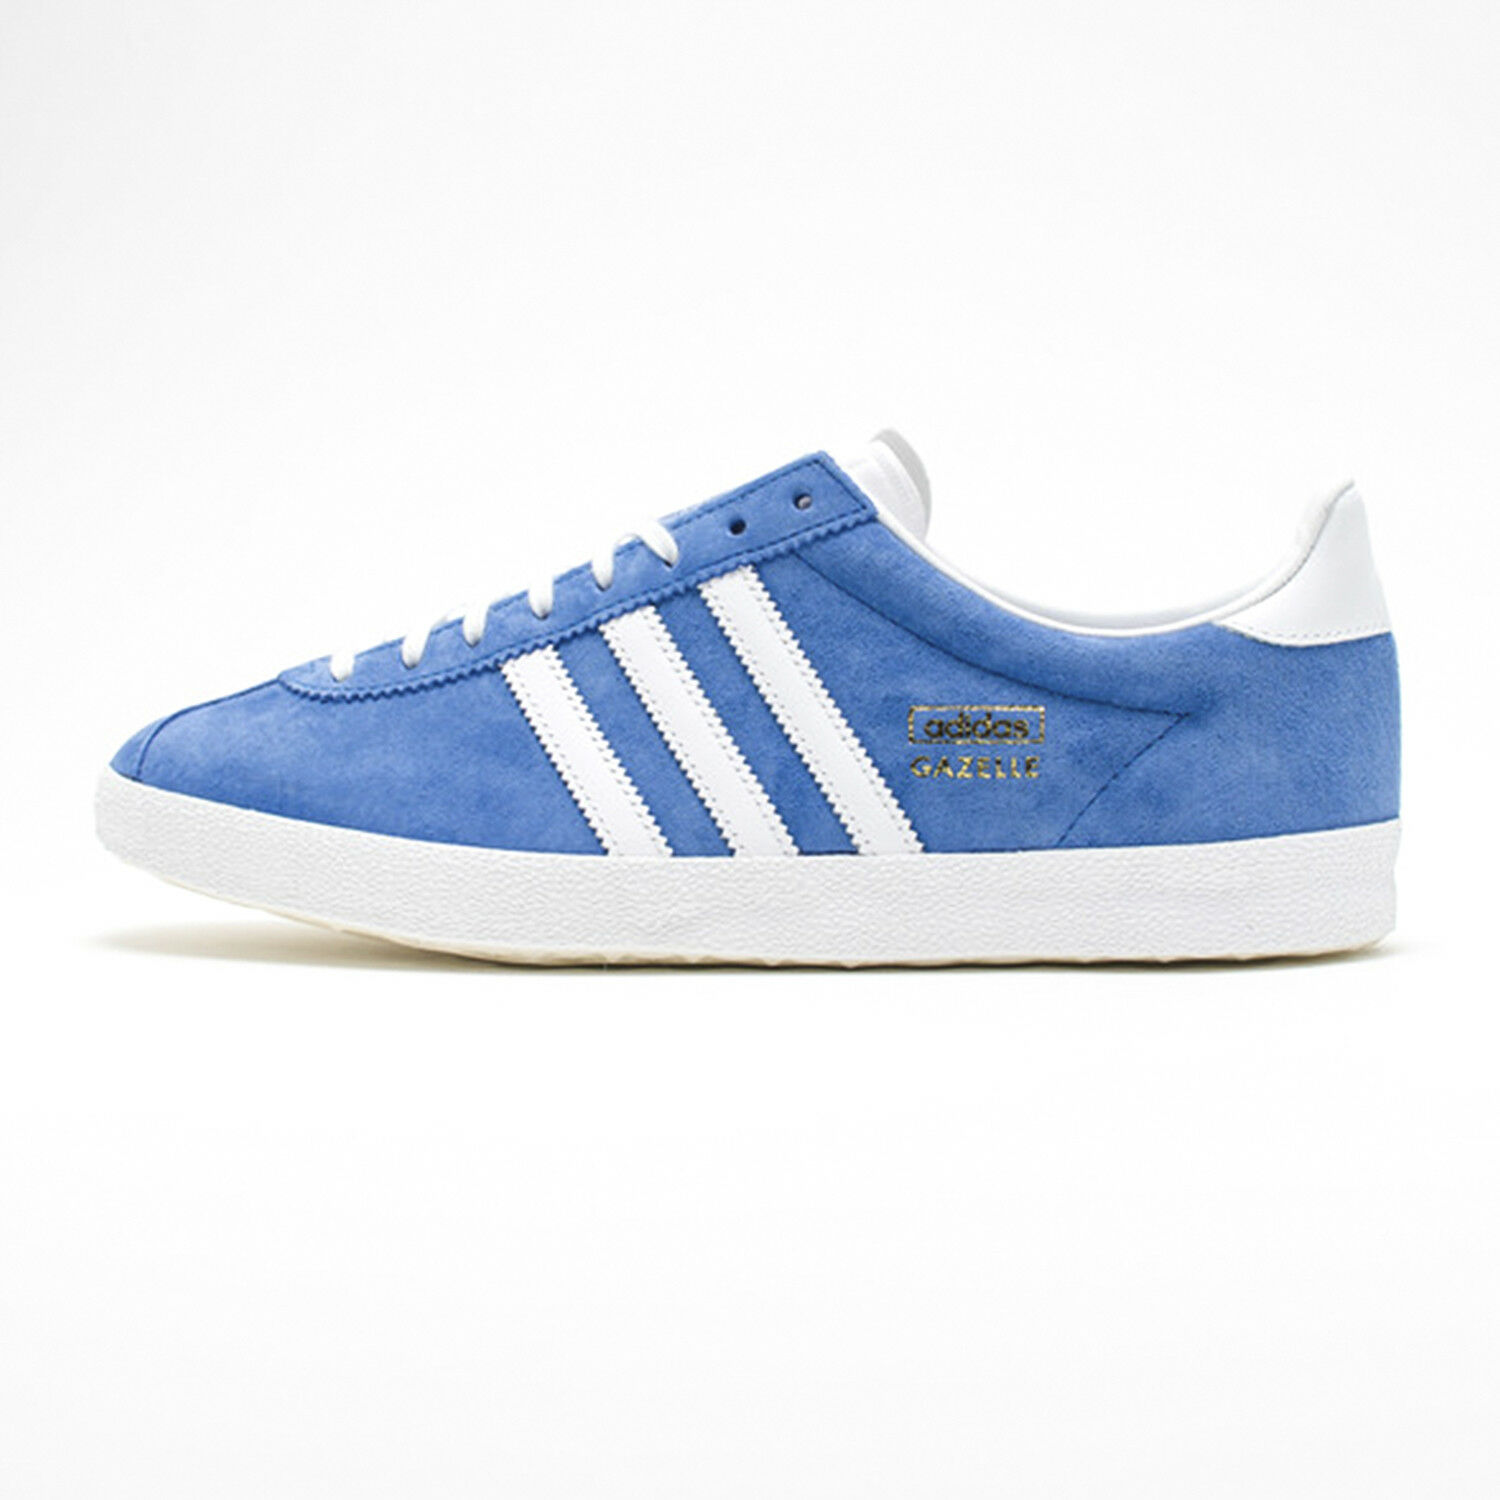 Adidas Originals Mens Gazelle OG Blau And Weiß Trainers Rubber Sole Lace Up